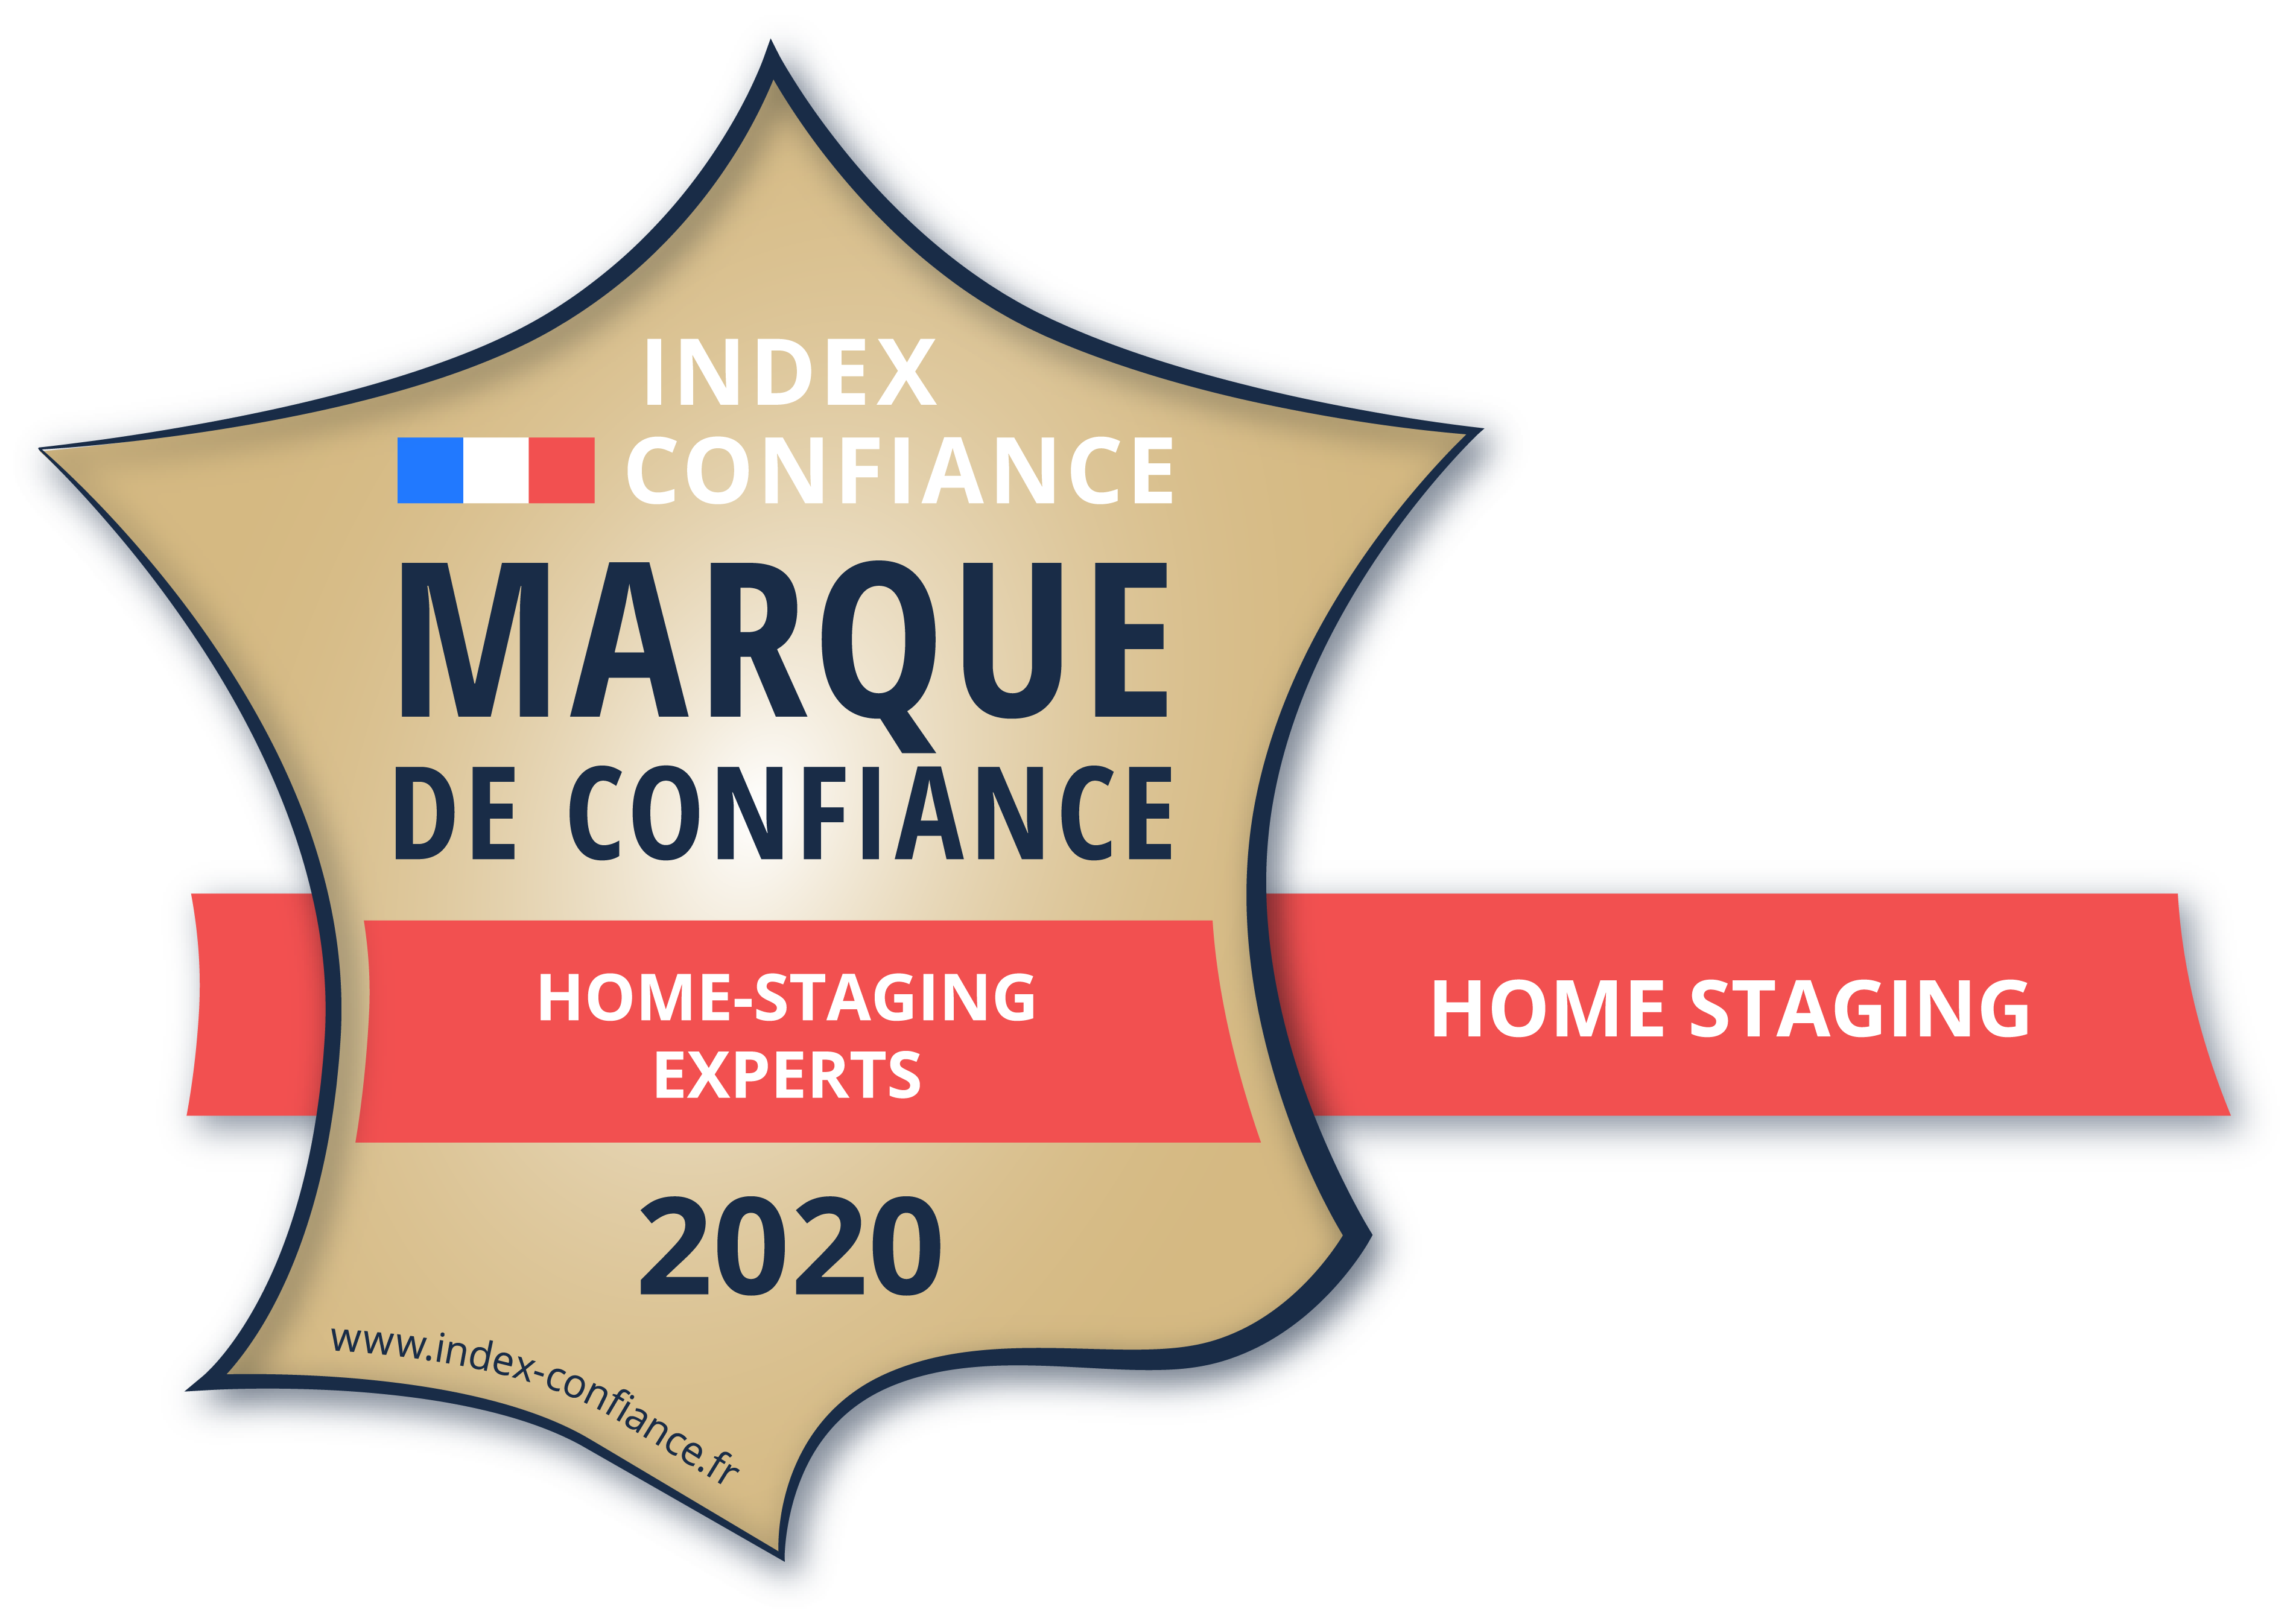 Home Staging Experts Marque Confiance 2019 2020